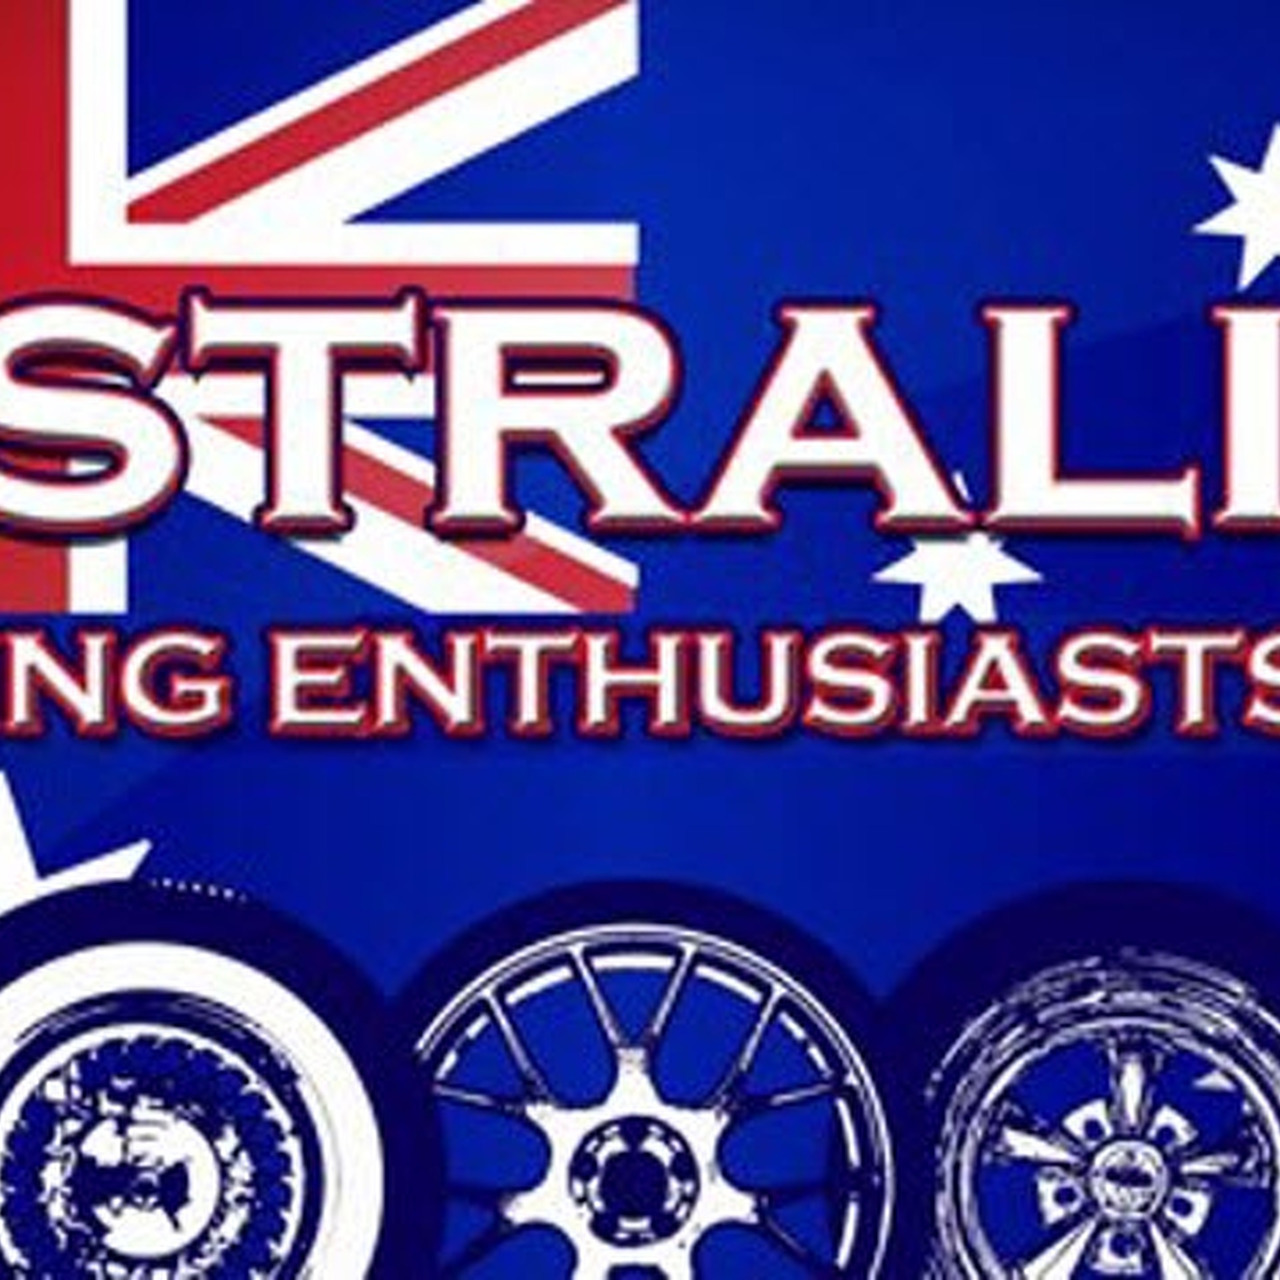 Australian Motoring Enthusiast Party's Muir Takes his Seat in the Senate